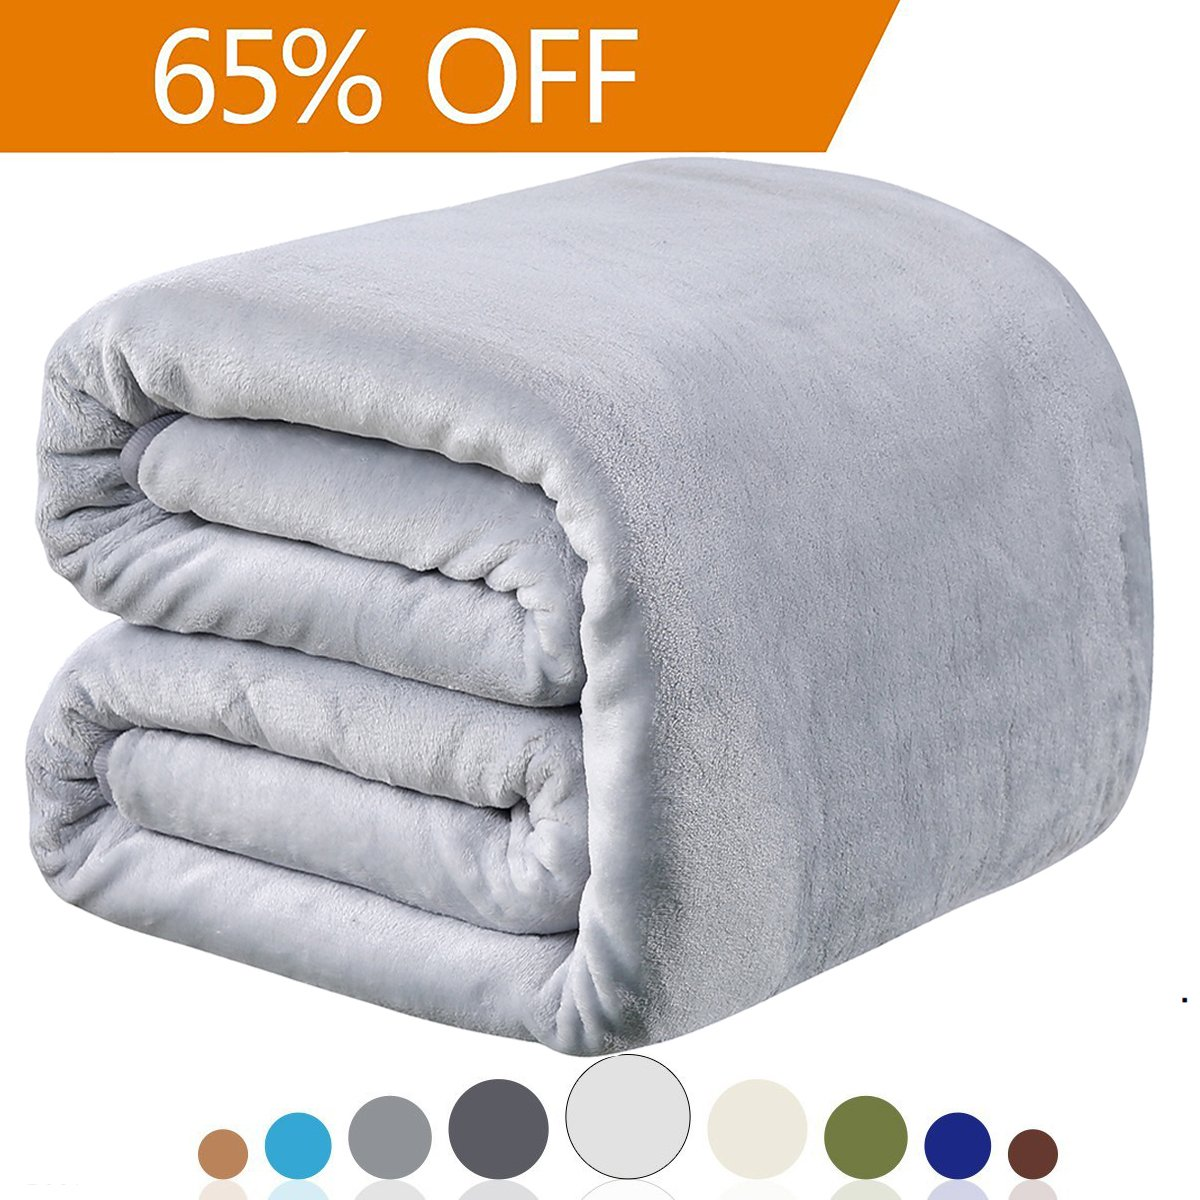 Polar Fleece Blankets King Size for The Bed Extra Soft Brush Fabric Super Warm Bed Blanket Lightweight Couch Blanket Light Gray King